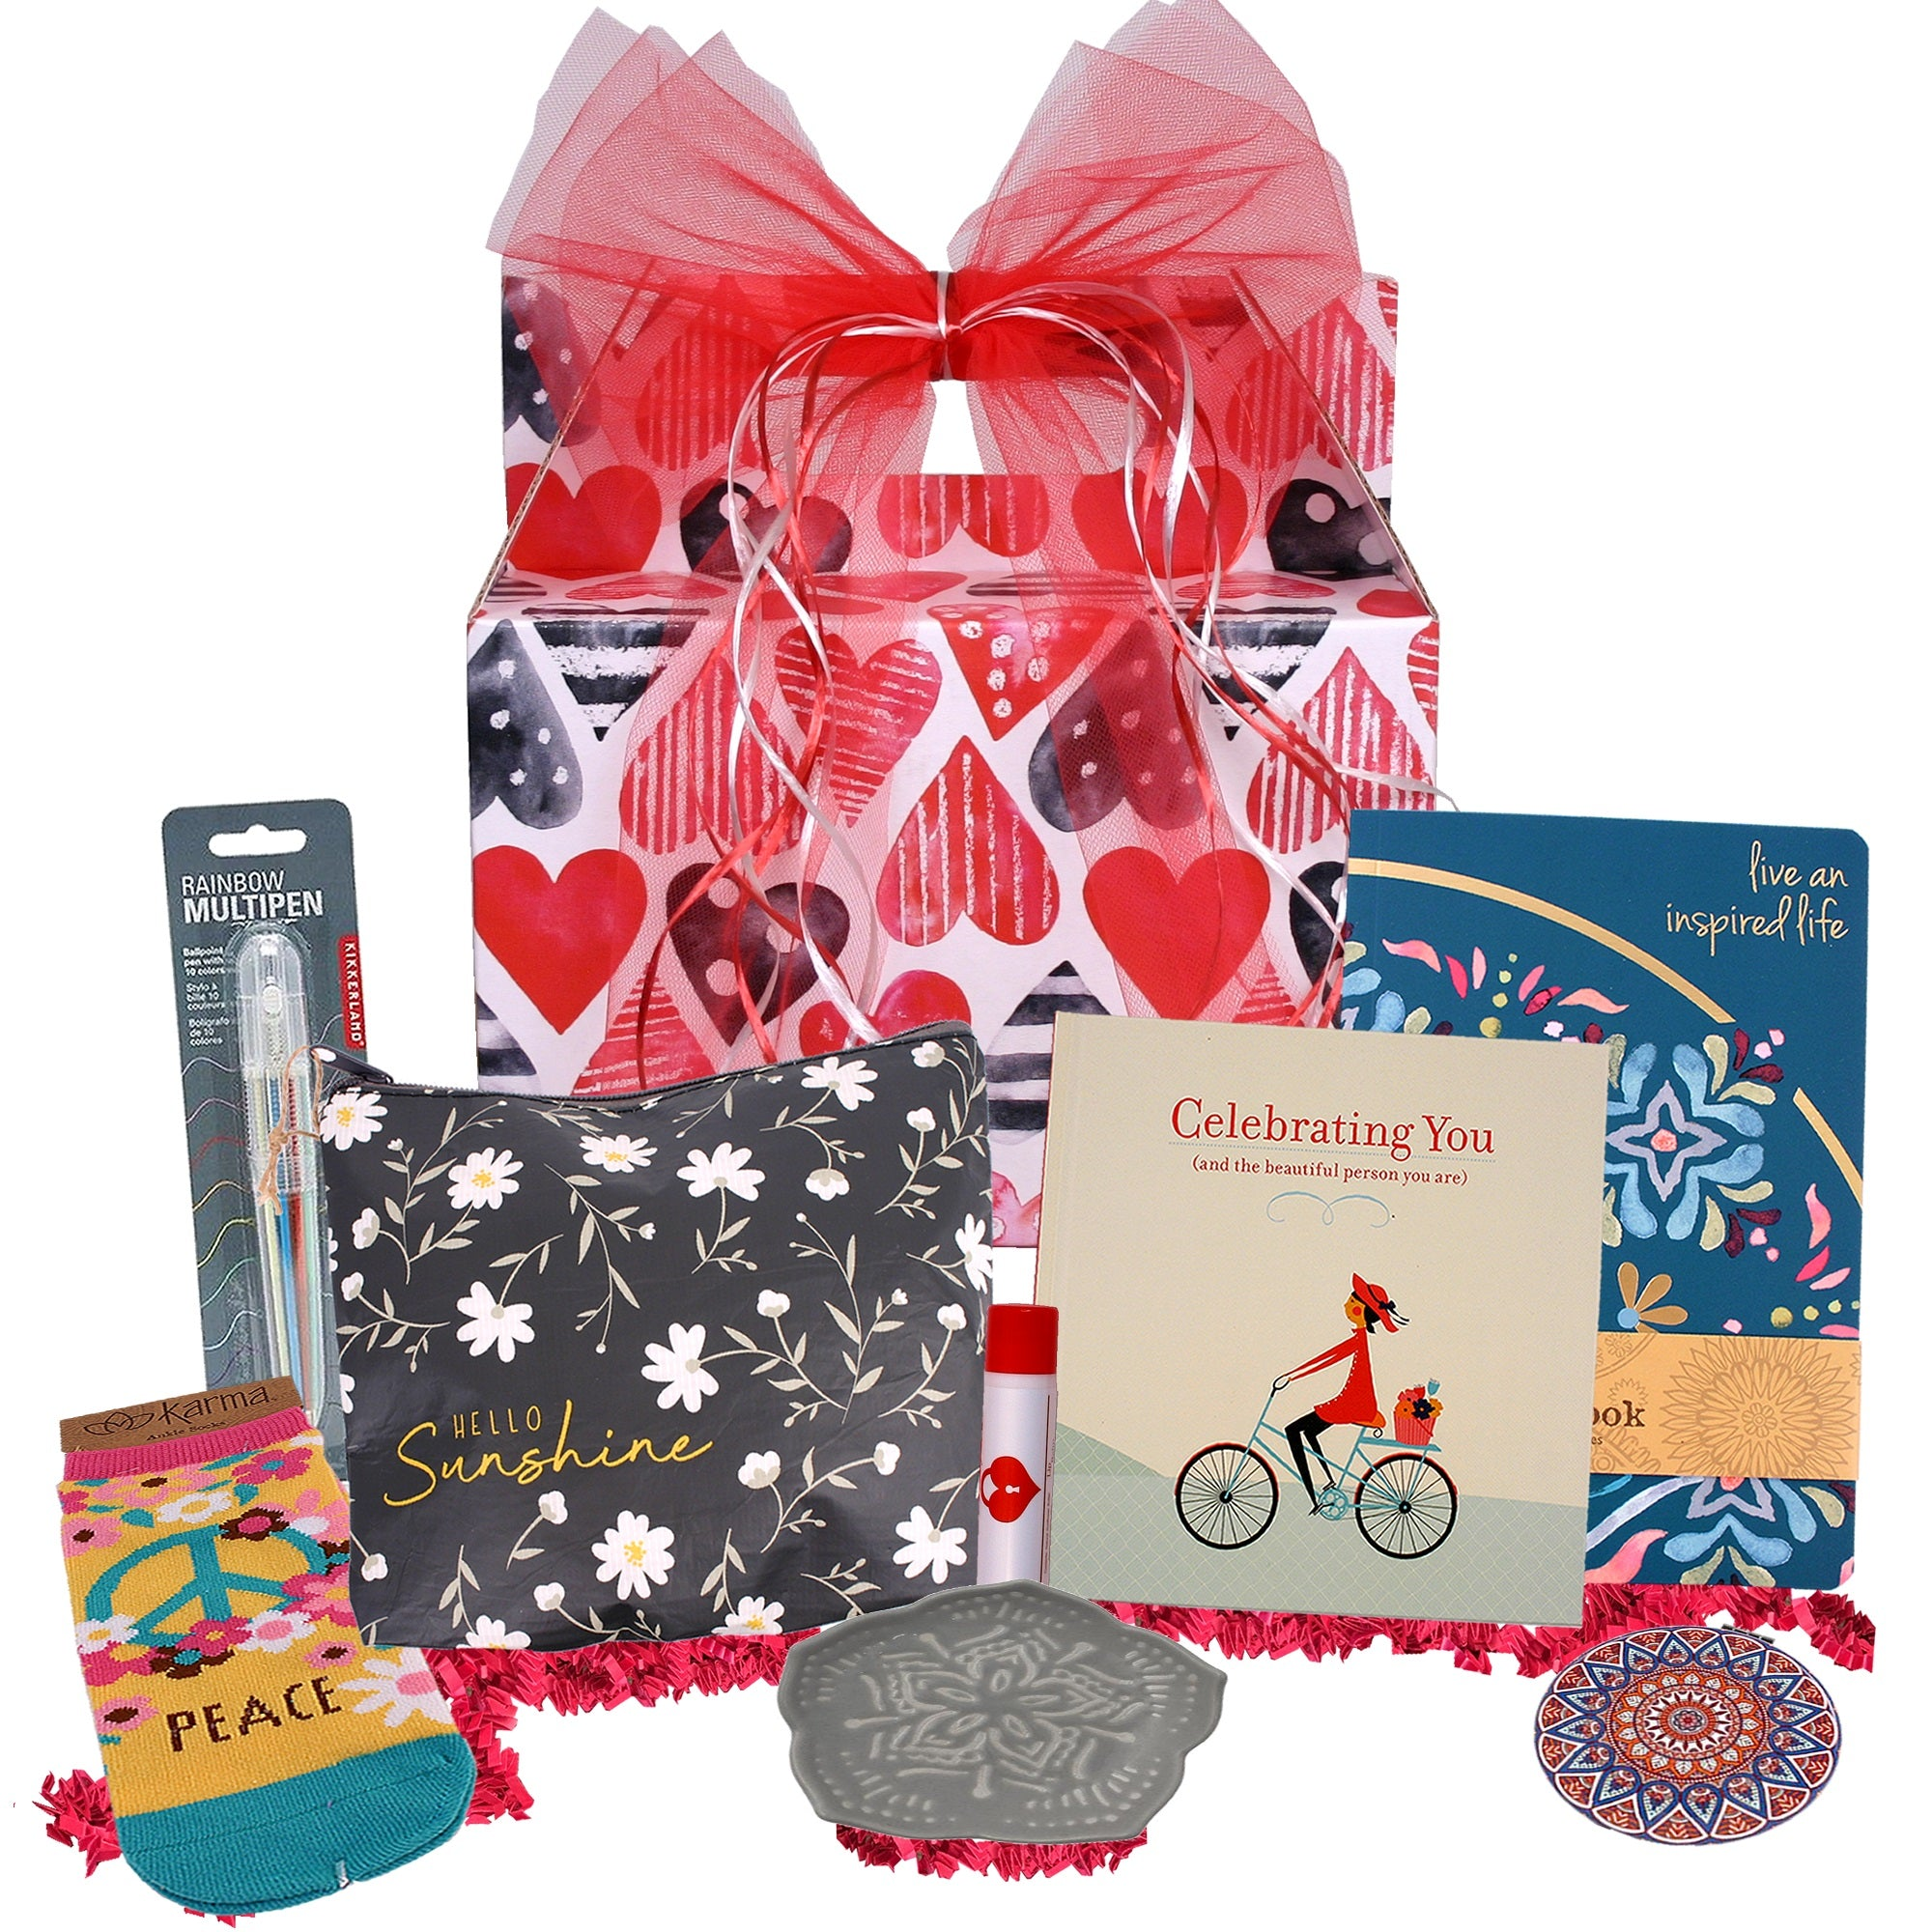 Celebrating You Valentine's Day Gift Basket